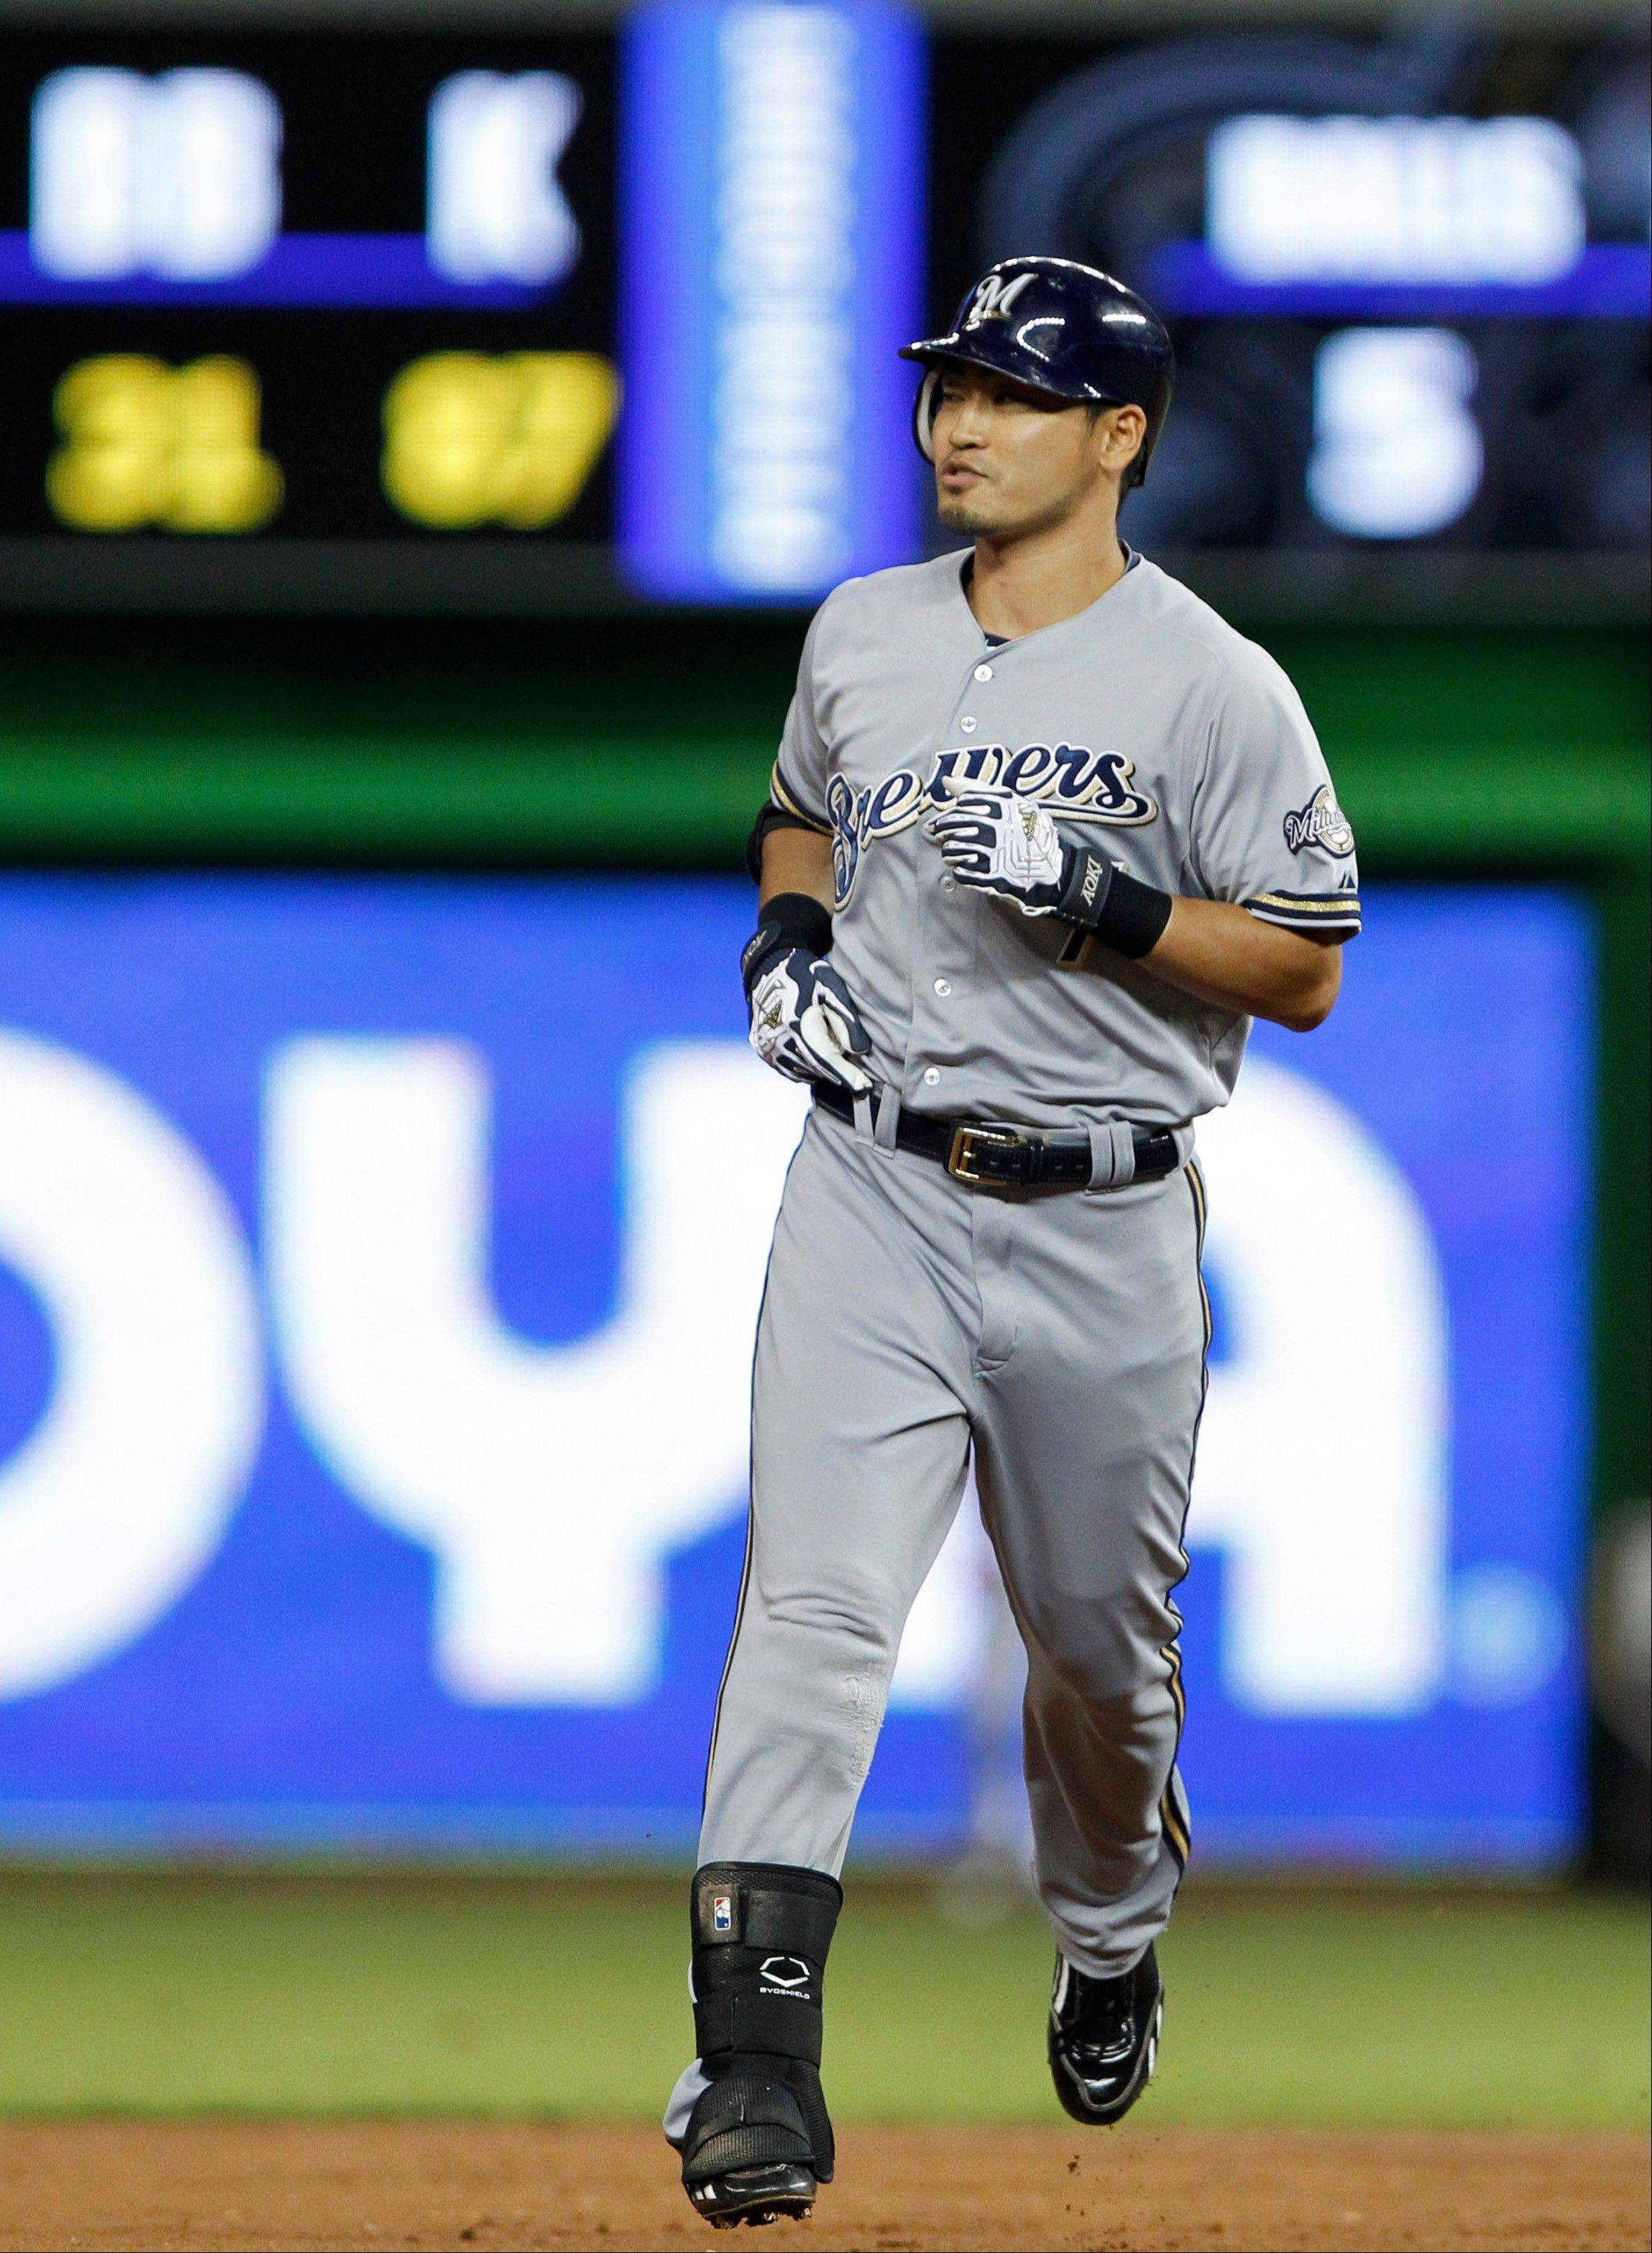 Milwaukee's Norichika Aoki rounds second base after he hit a two-run home run during the second inning Tuesday in Miami.